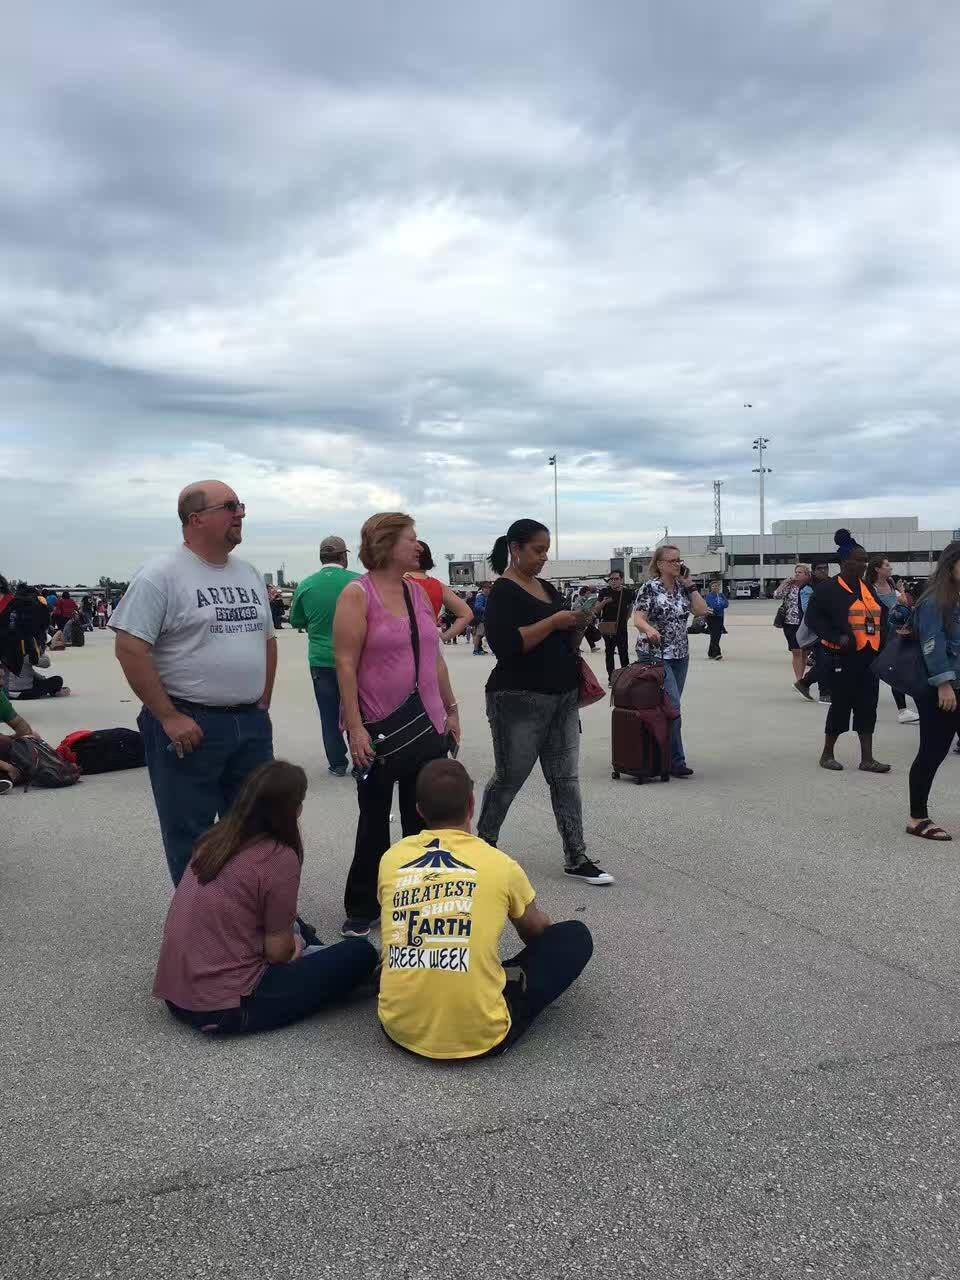 Anxious people await at the Fort Lauderdale Airport after the shooting.